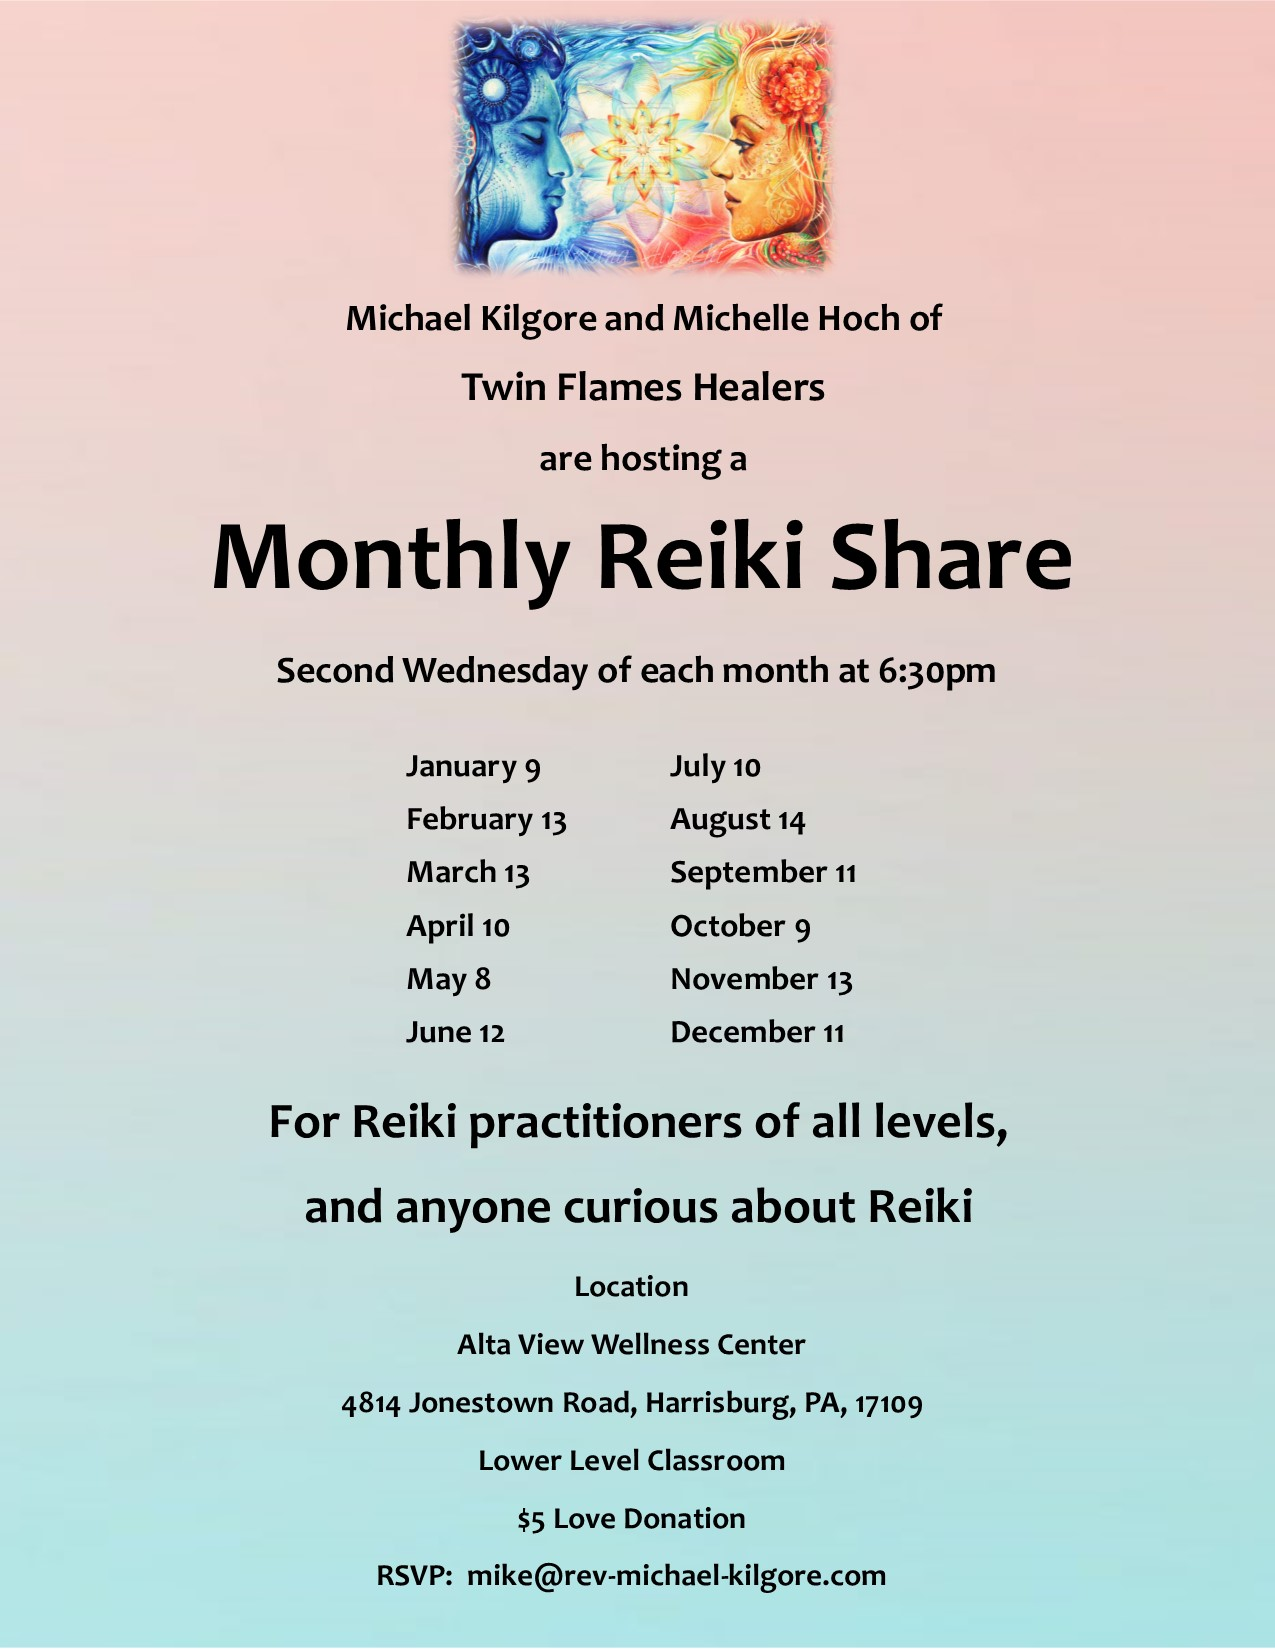 Reiki Share Flyer 10-17-18.jpg